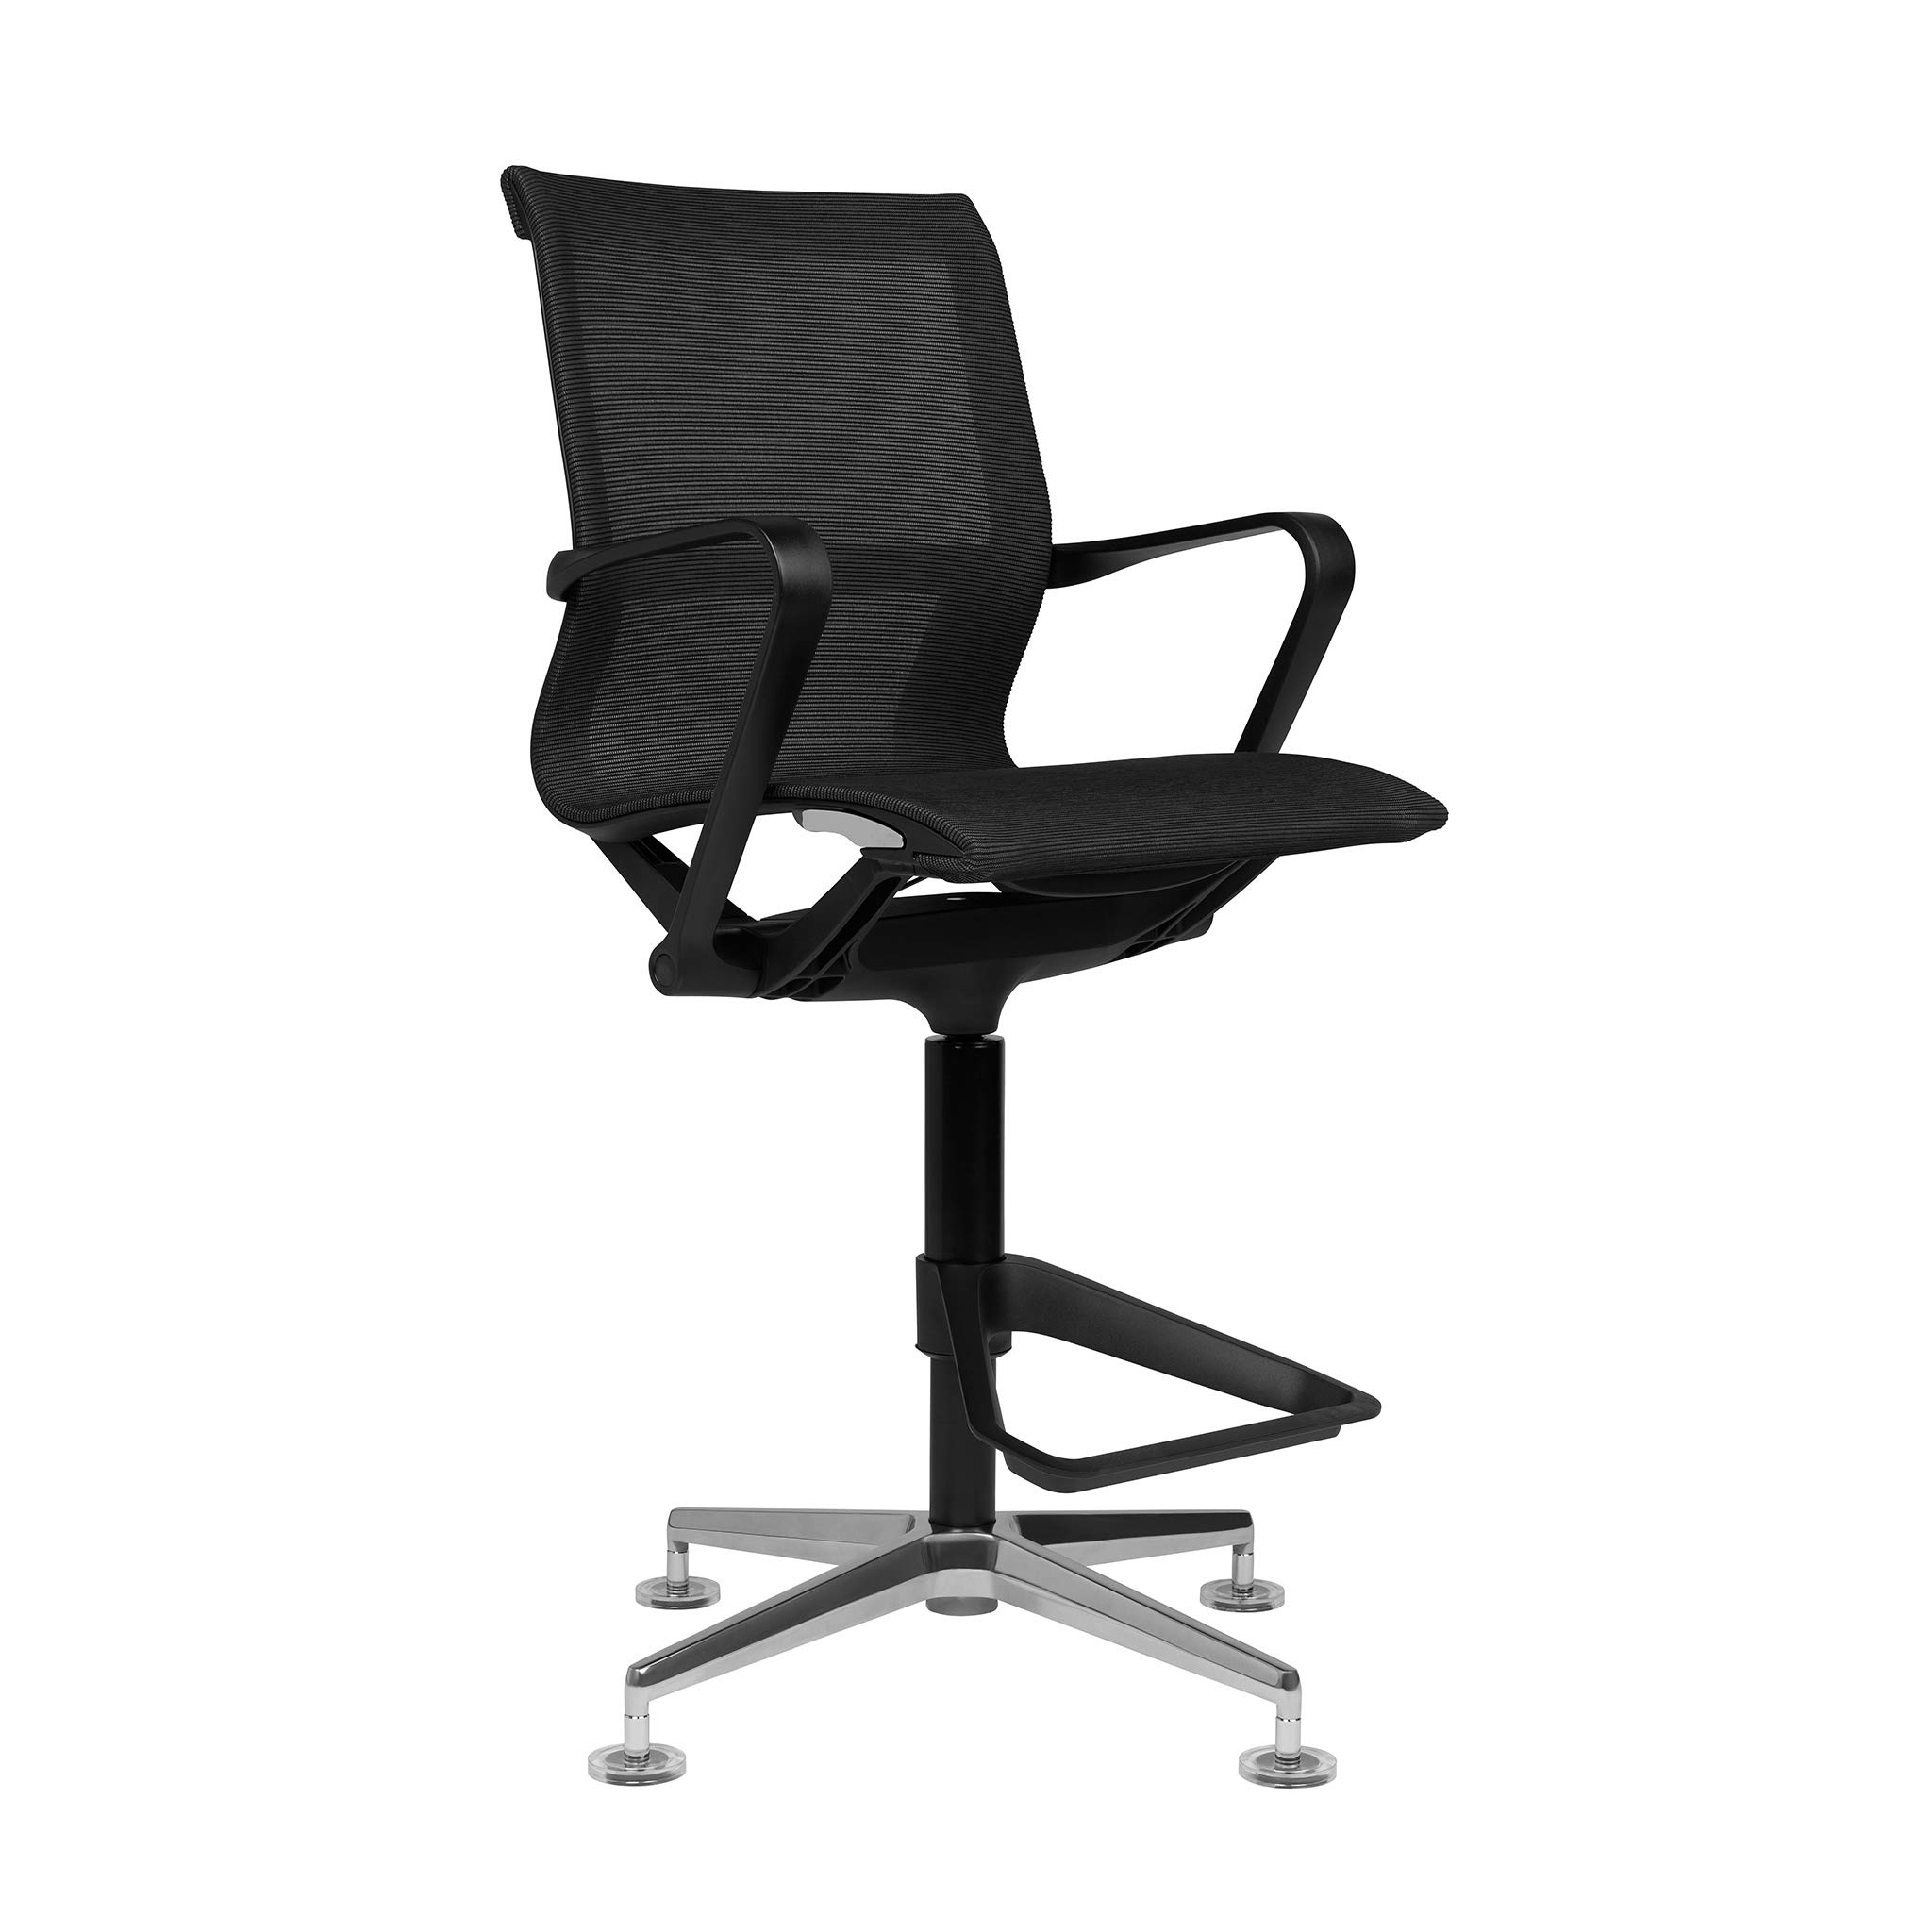 Empire Mesh Drafting Chair - Ergonomically Designed and Commercial Grade Draft Height (Black) by Laura Davidson Furniture